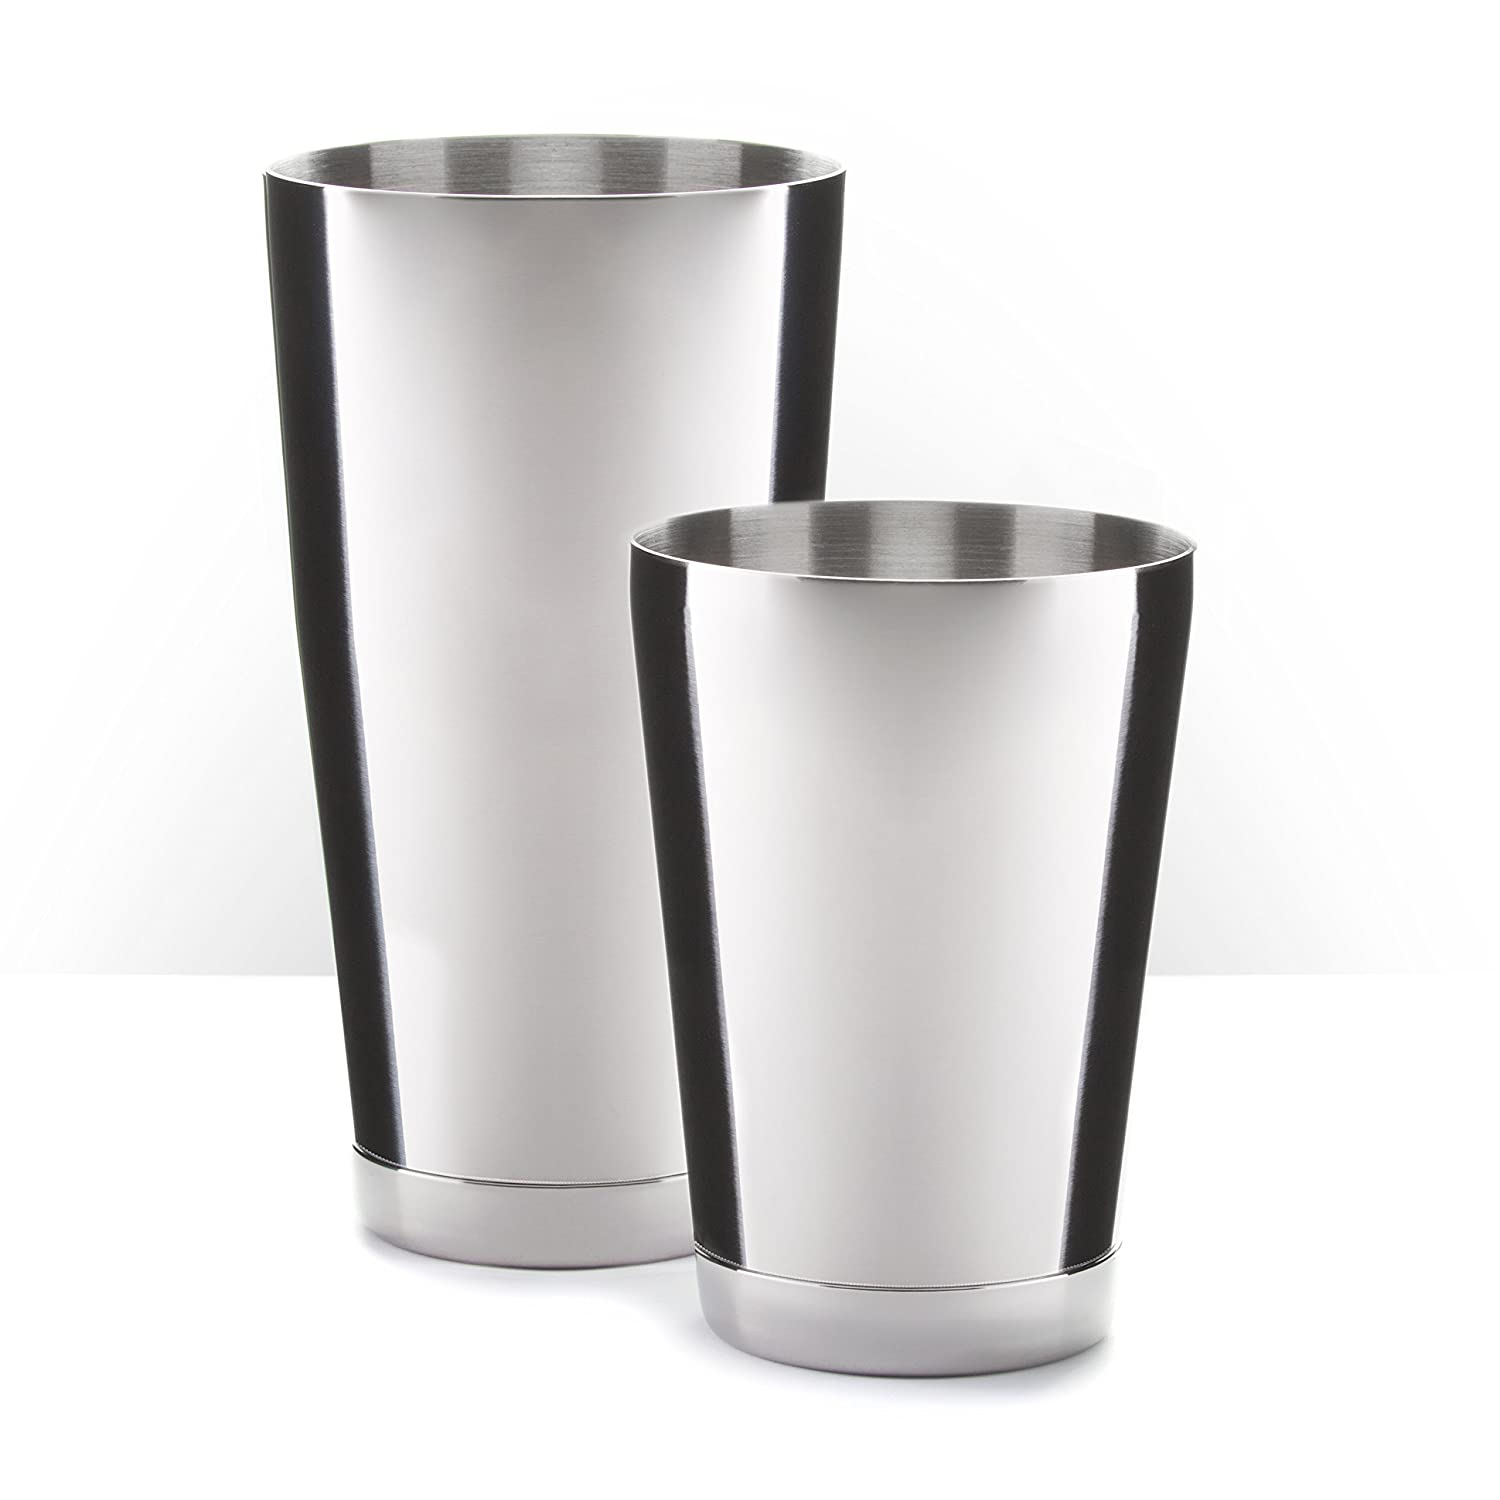 Piña Barware Stainless Steel Commercial Bar Boston Shaker Tin Set - 28oz. & 18oz. SYNCHKG094455